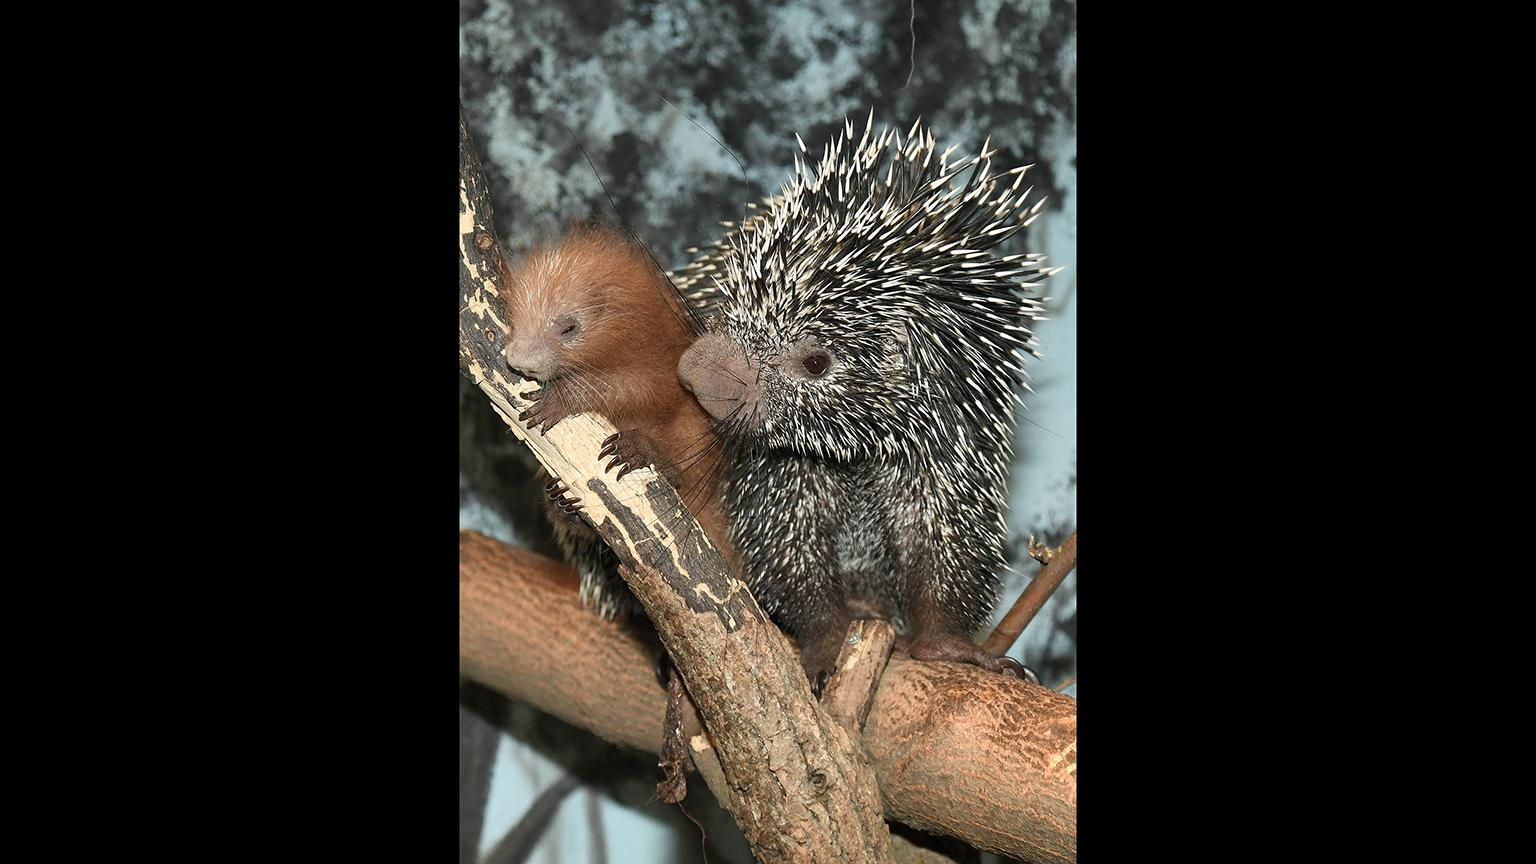 Lucia, a 5-year-old prehensile-tailed porcupine at Brookfield Zoo, gave birth to a male porcupette last month. (Jim Schulz / Chicago Zoological Society)